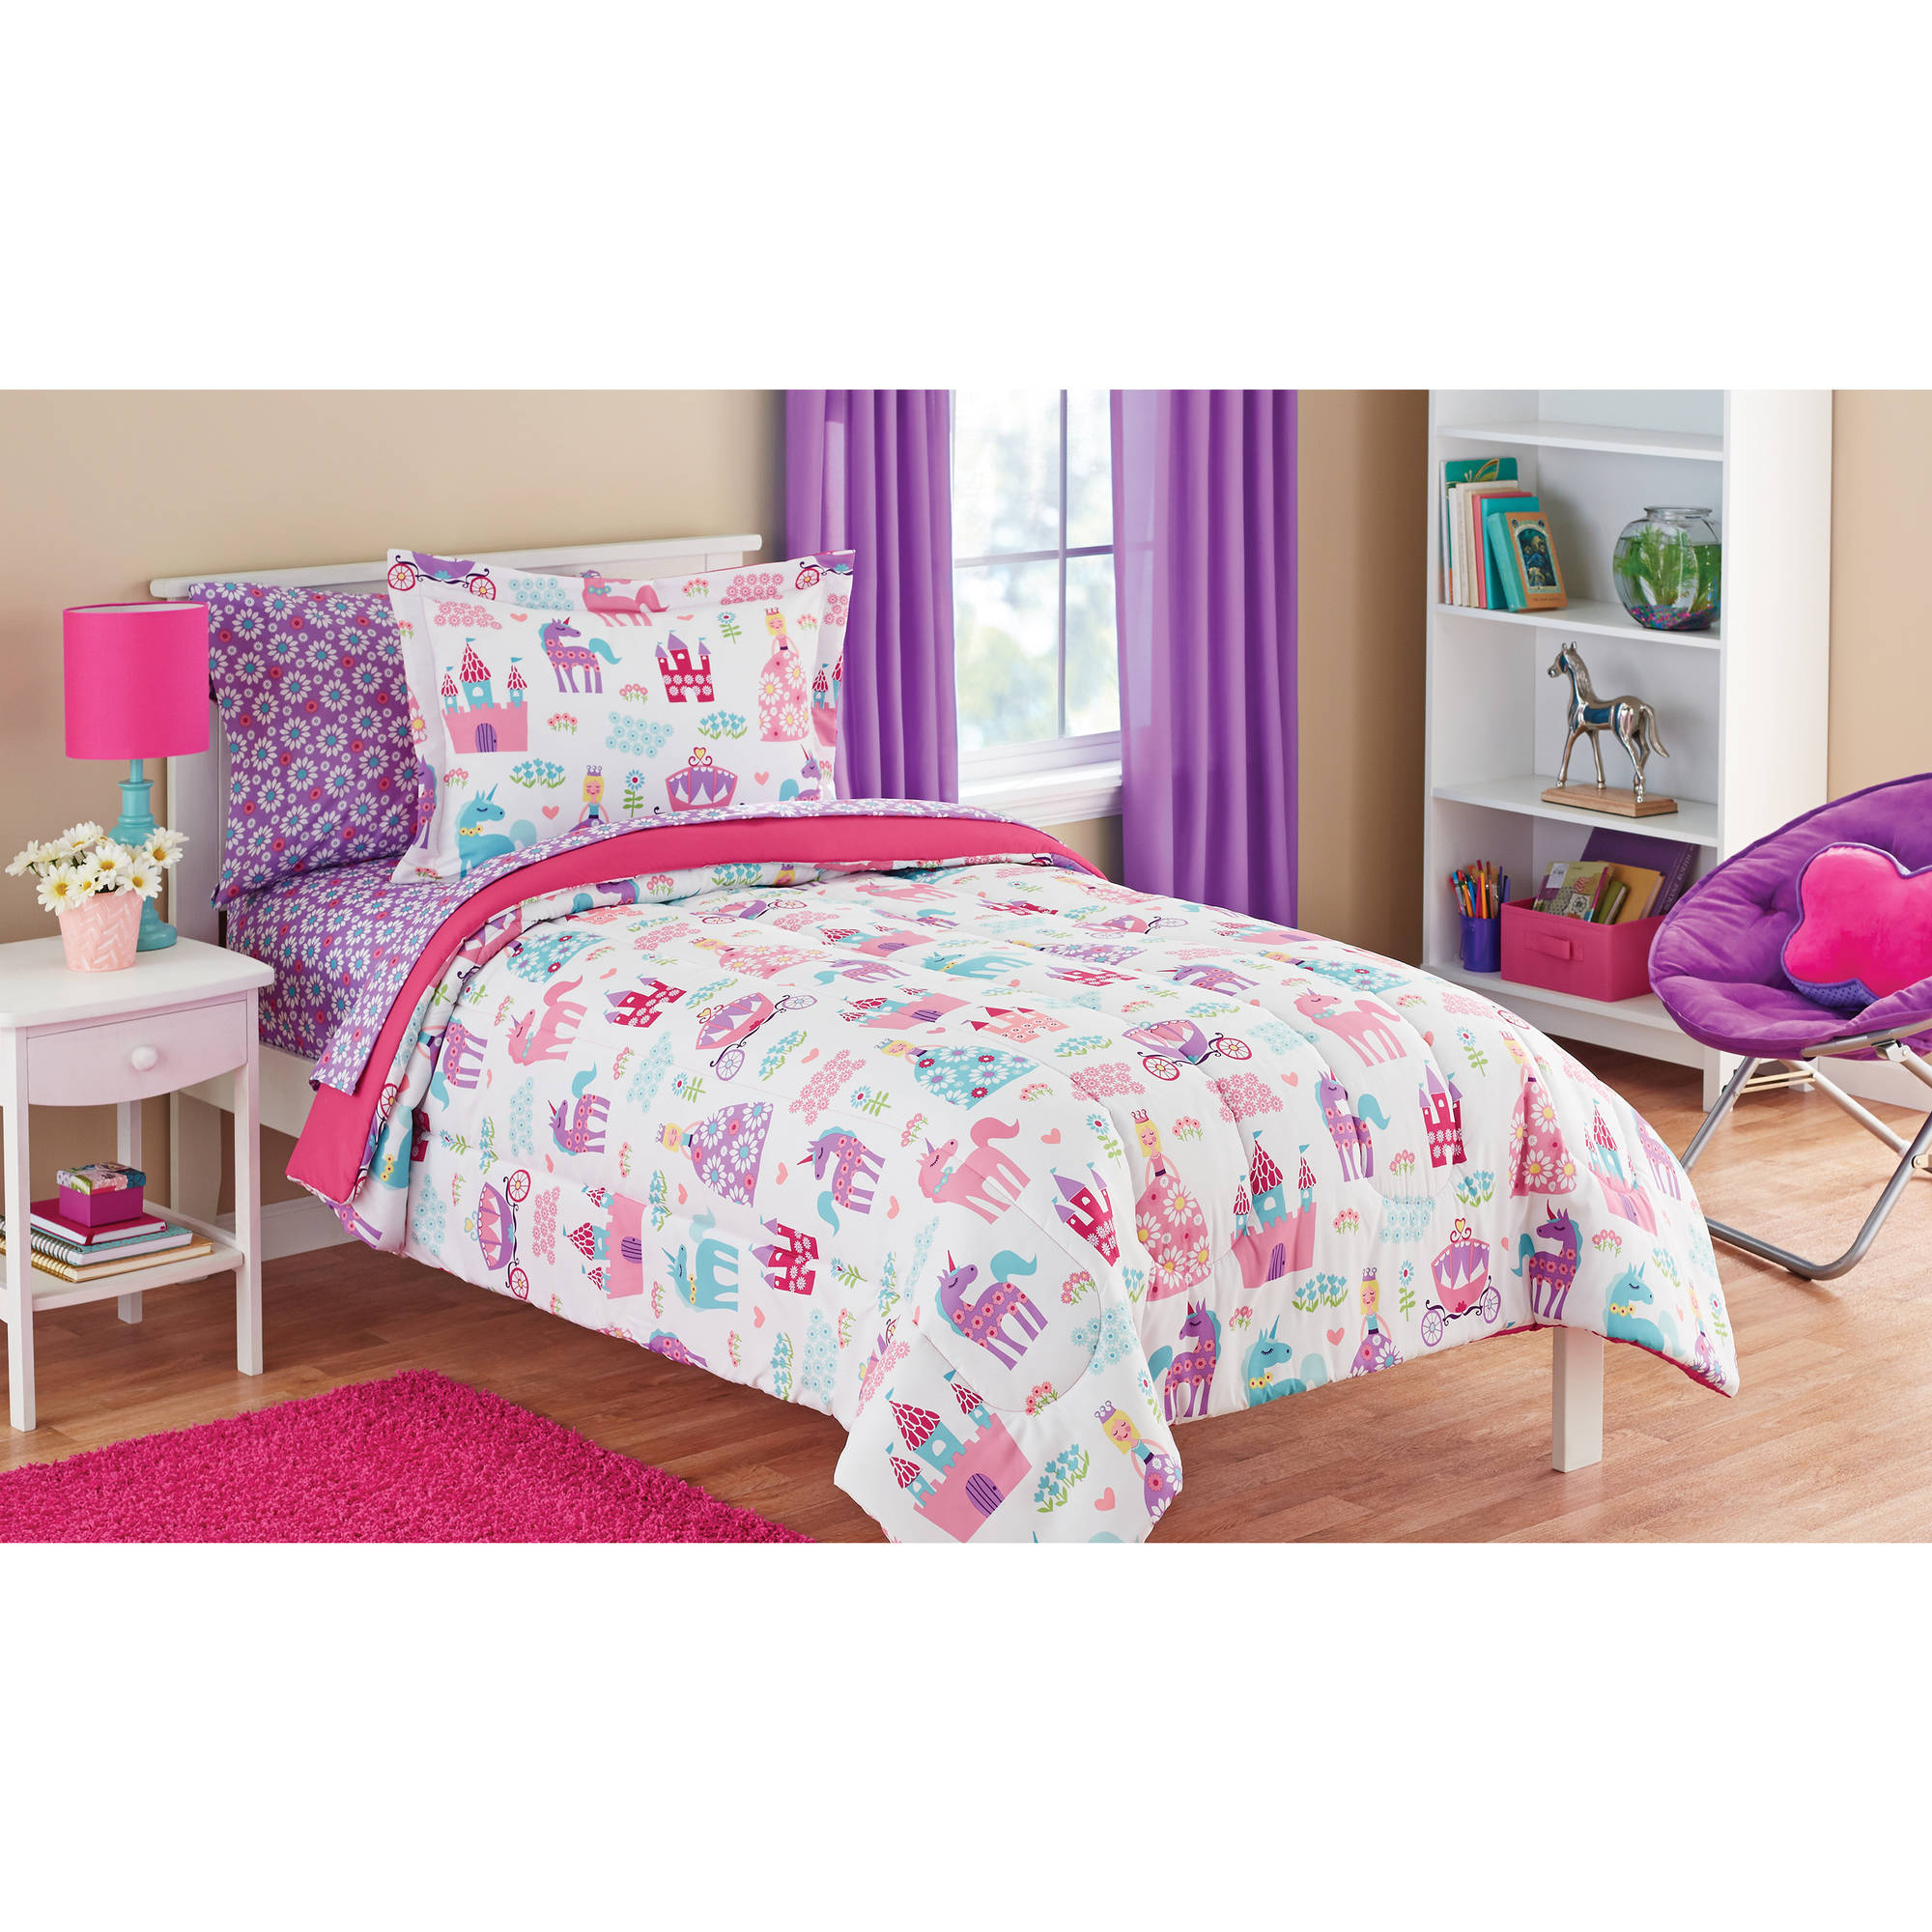 kids pretty princess bed in a bag bedding set twin full size comforter sheets ebay. Black Bedroom Furniture Sets. Home Design Ideas